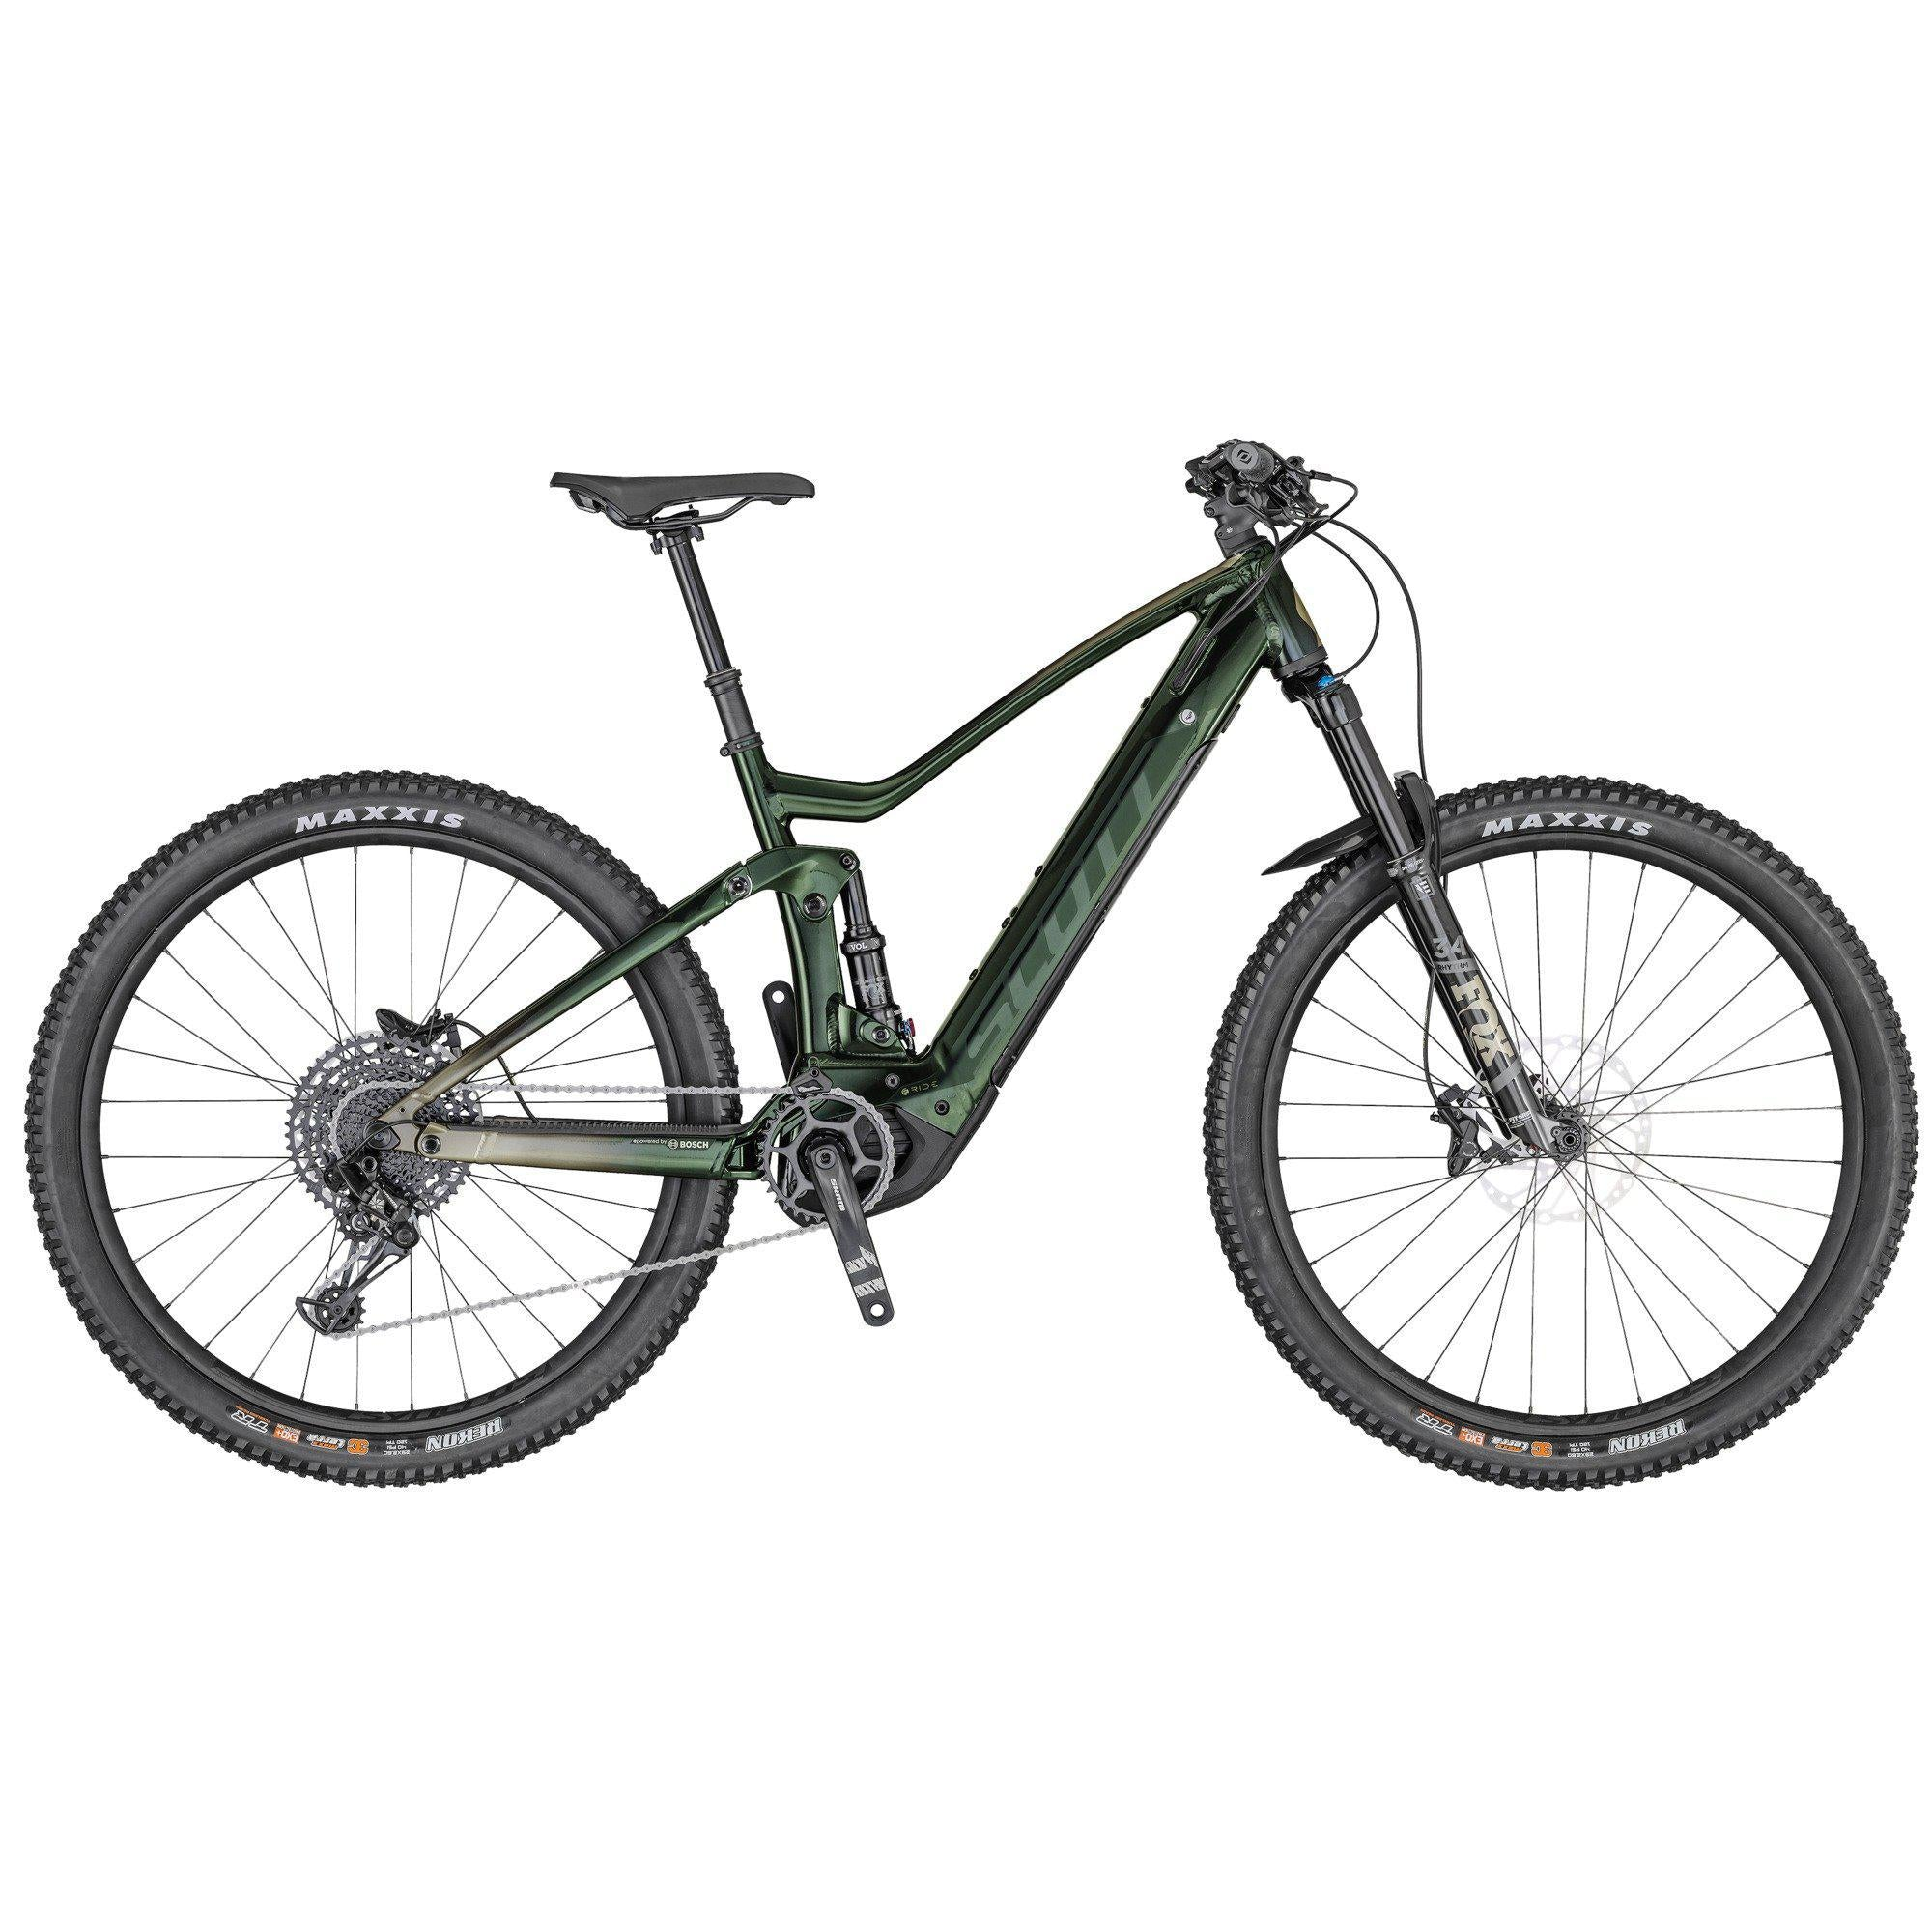 Scott Strike eRide 910-Oregon E-Bikes